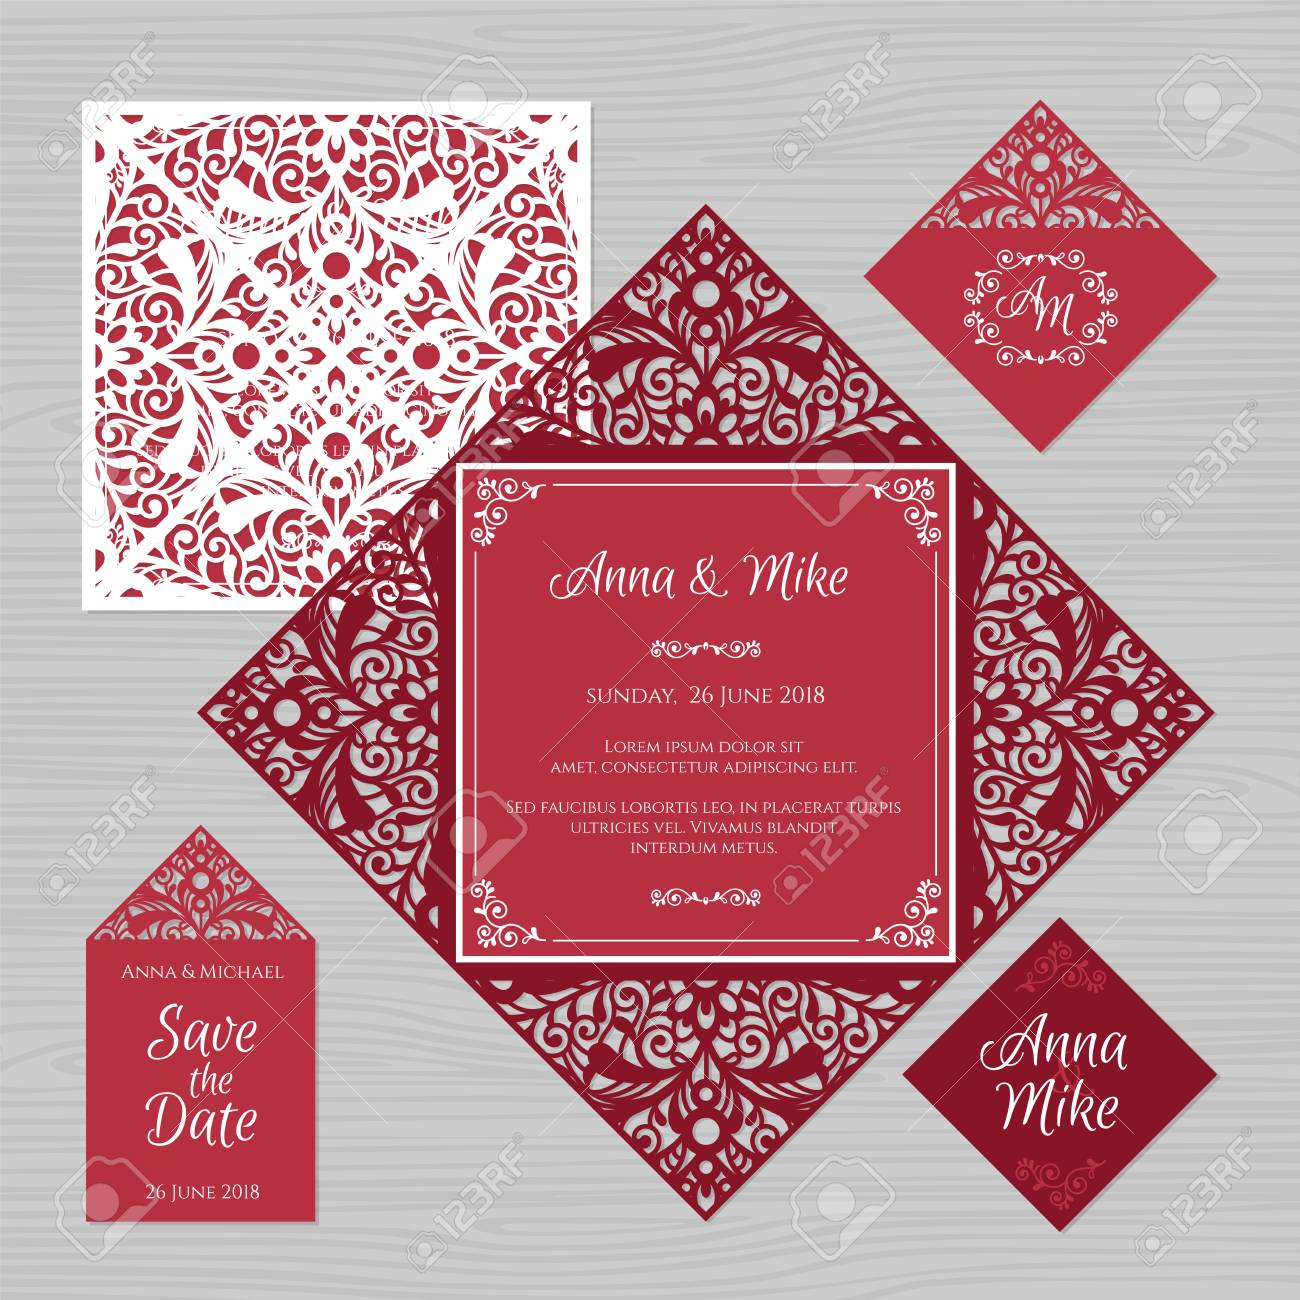 Famous Envelopes For Wedding Invites Illustration - Invitations and ...